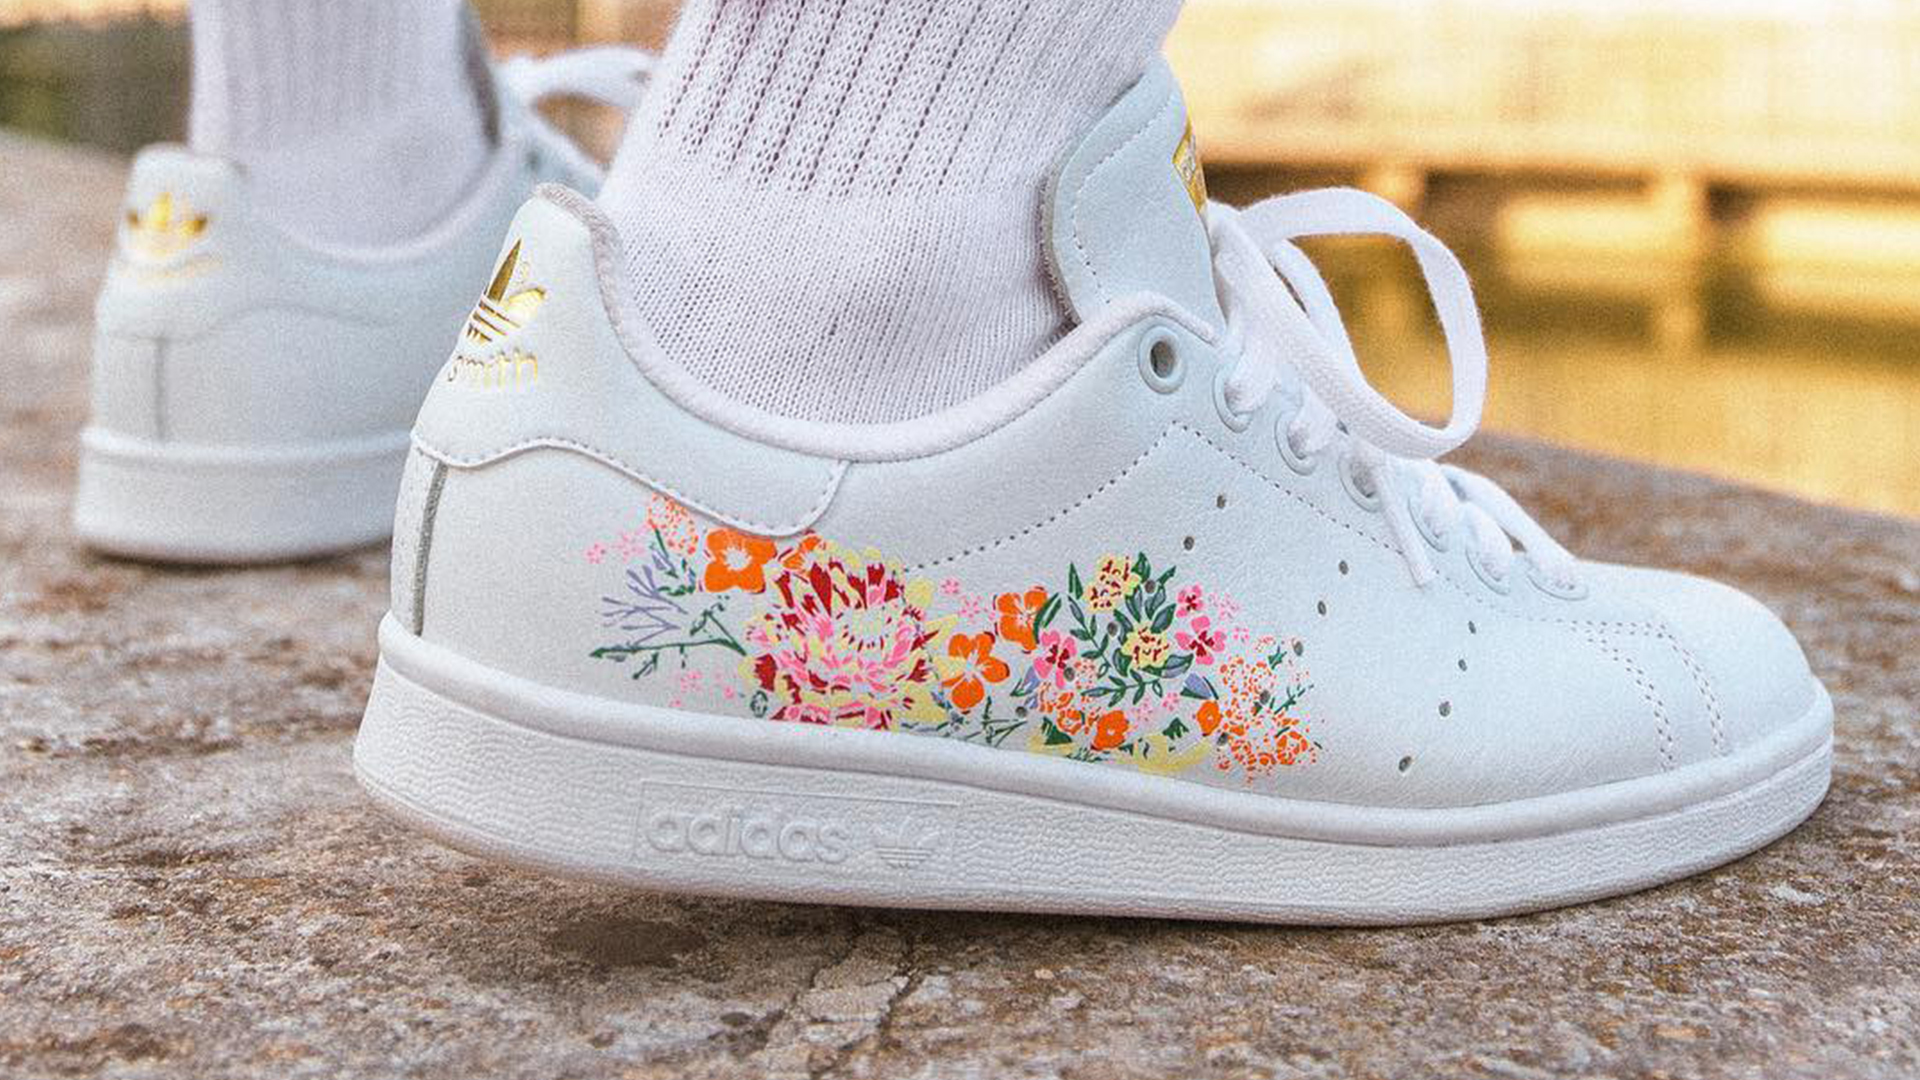 Adidas Stan Smith Floral Print White Womens Bc0257 The